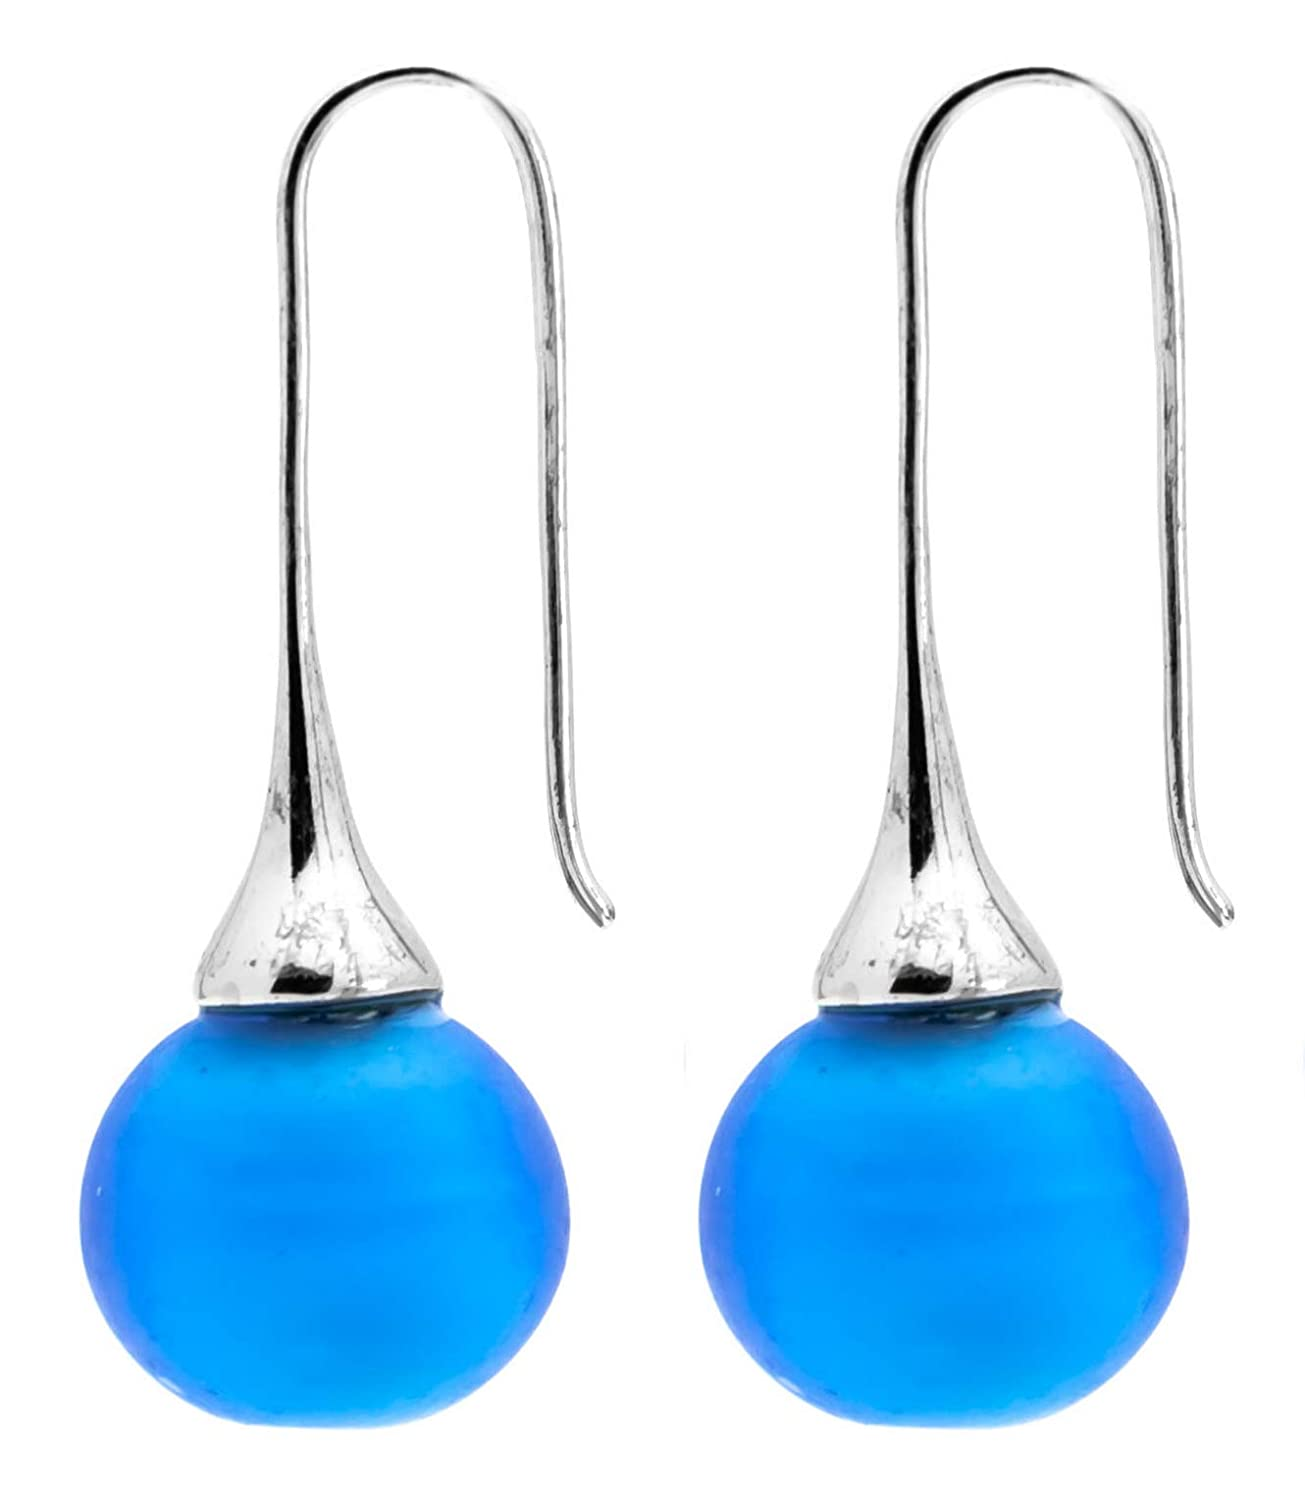 Authentic Murano Glass San Antonio Mall Drop Earrings earrings - Dangle Max 41% OFF -Frosted